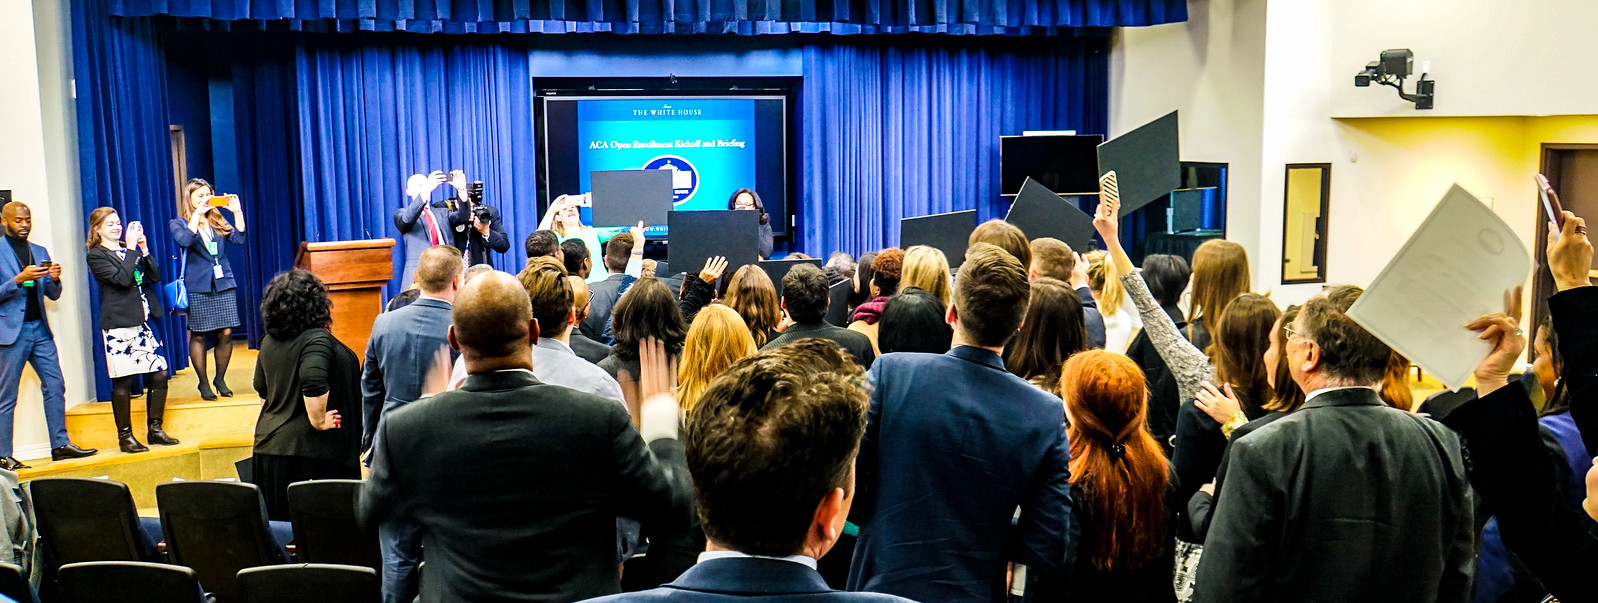 #GetCovered White House Briefing Photos & #MannequinChallenge